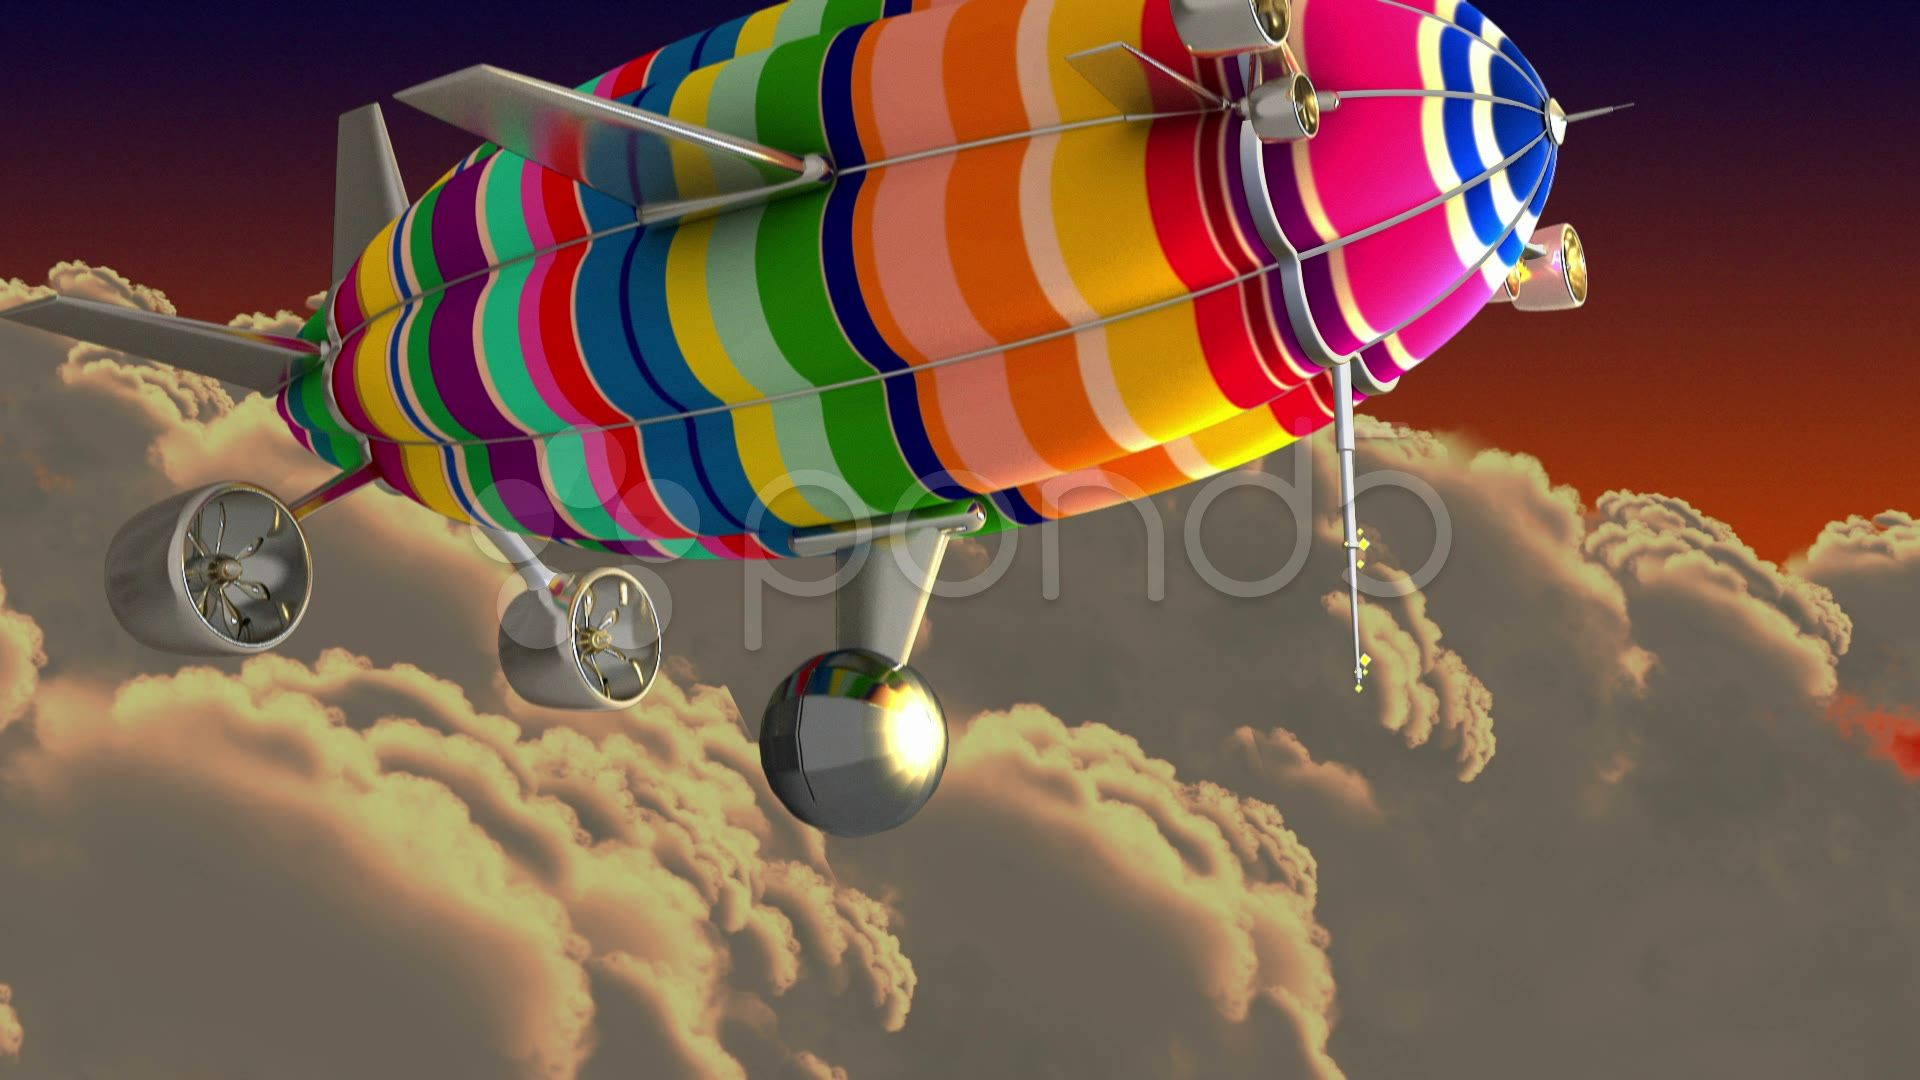 Colorful airship in the clouds introductory splash with